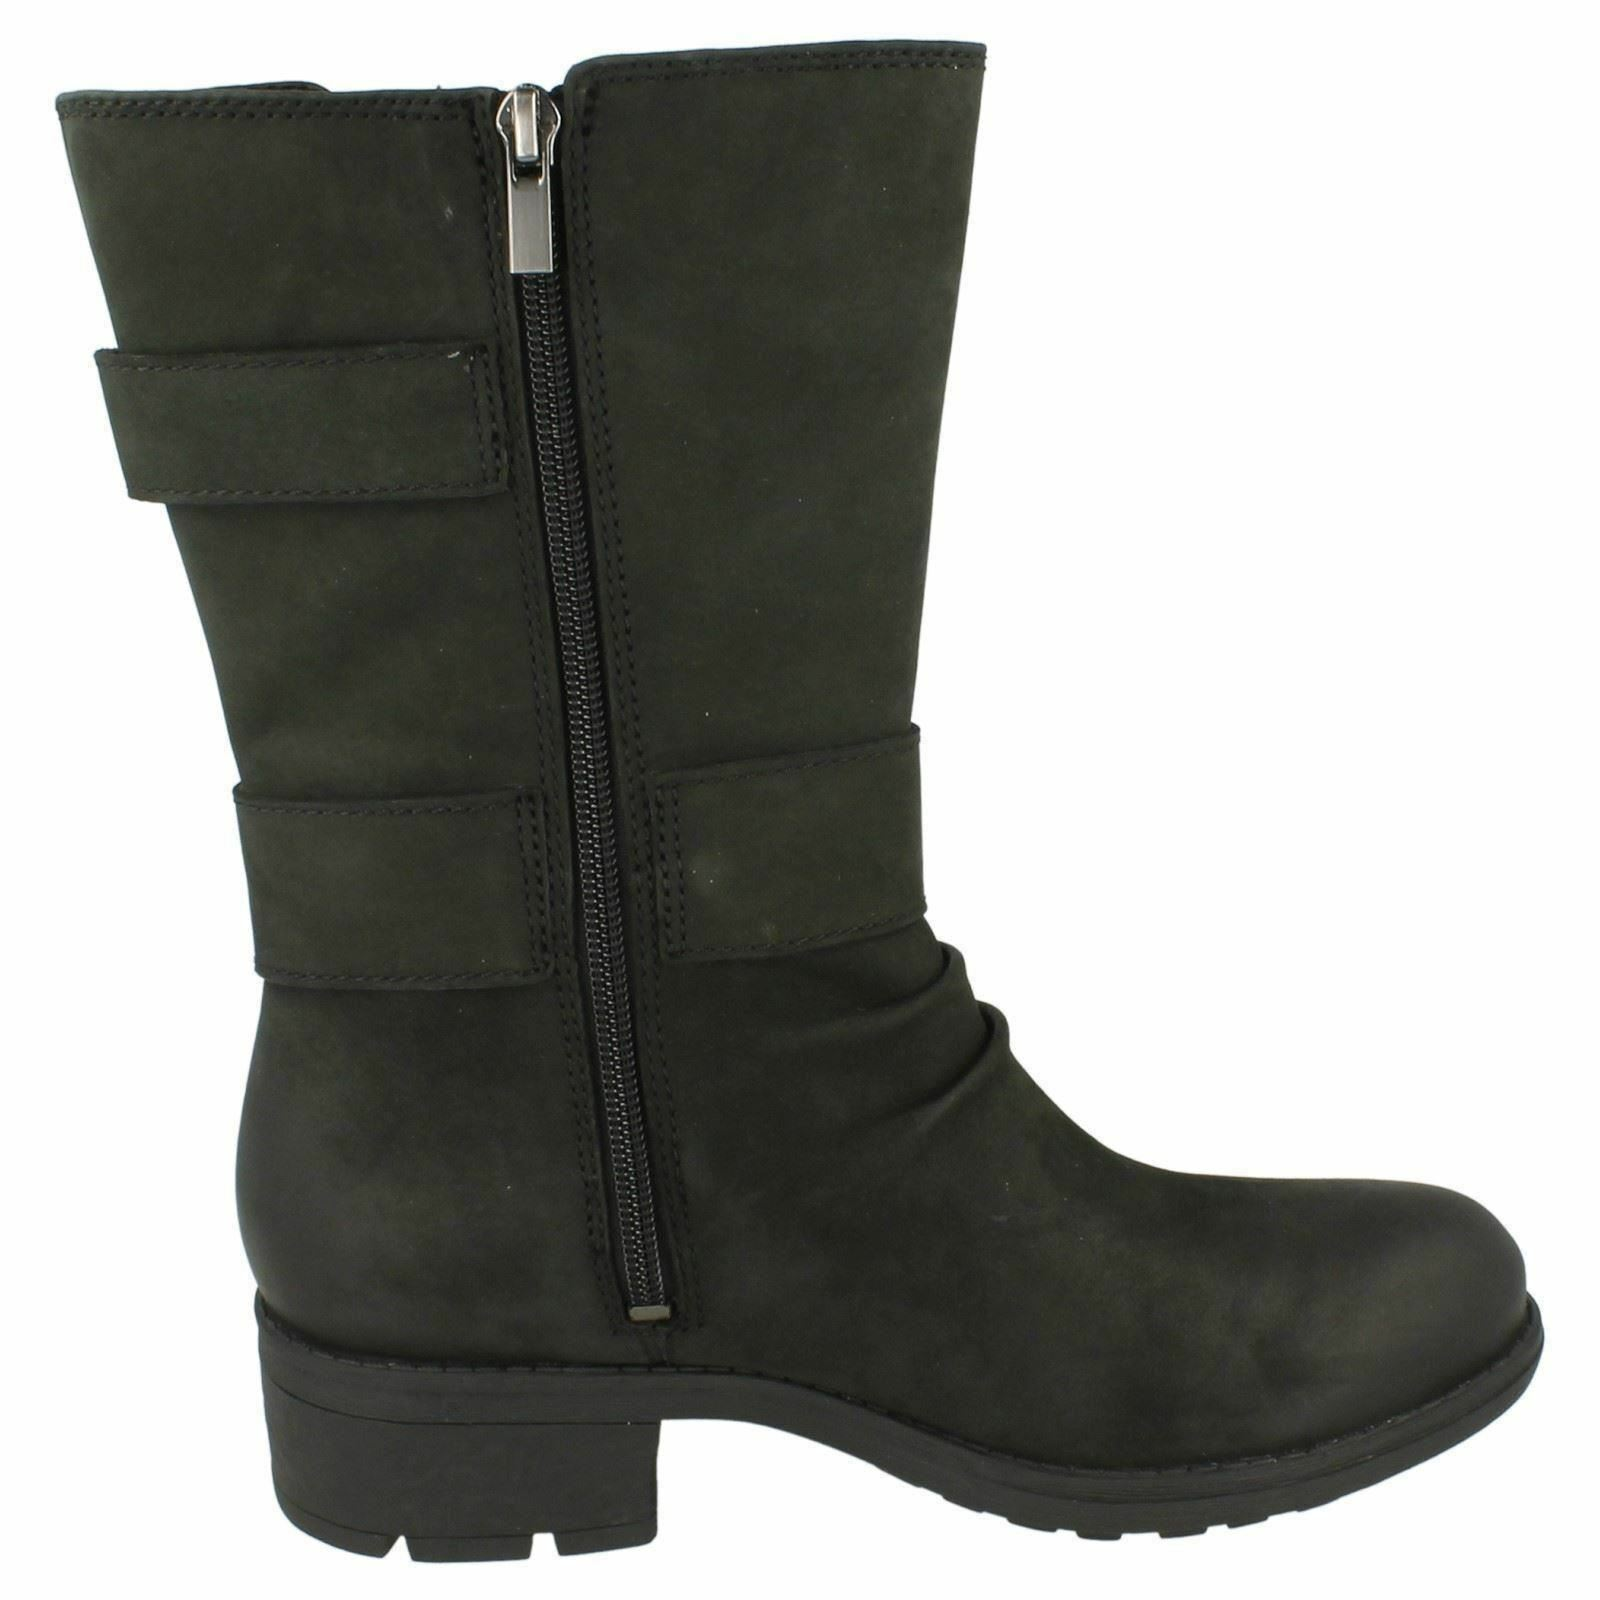 Clarks 'Mansi 'Mansi 'Mansi Tess GTX' Ladies Black Leather Biker Style Waterproof Boots D Fit 4bf383